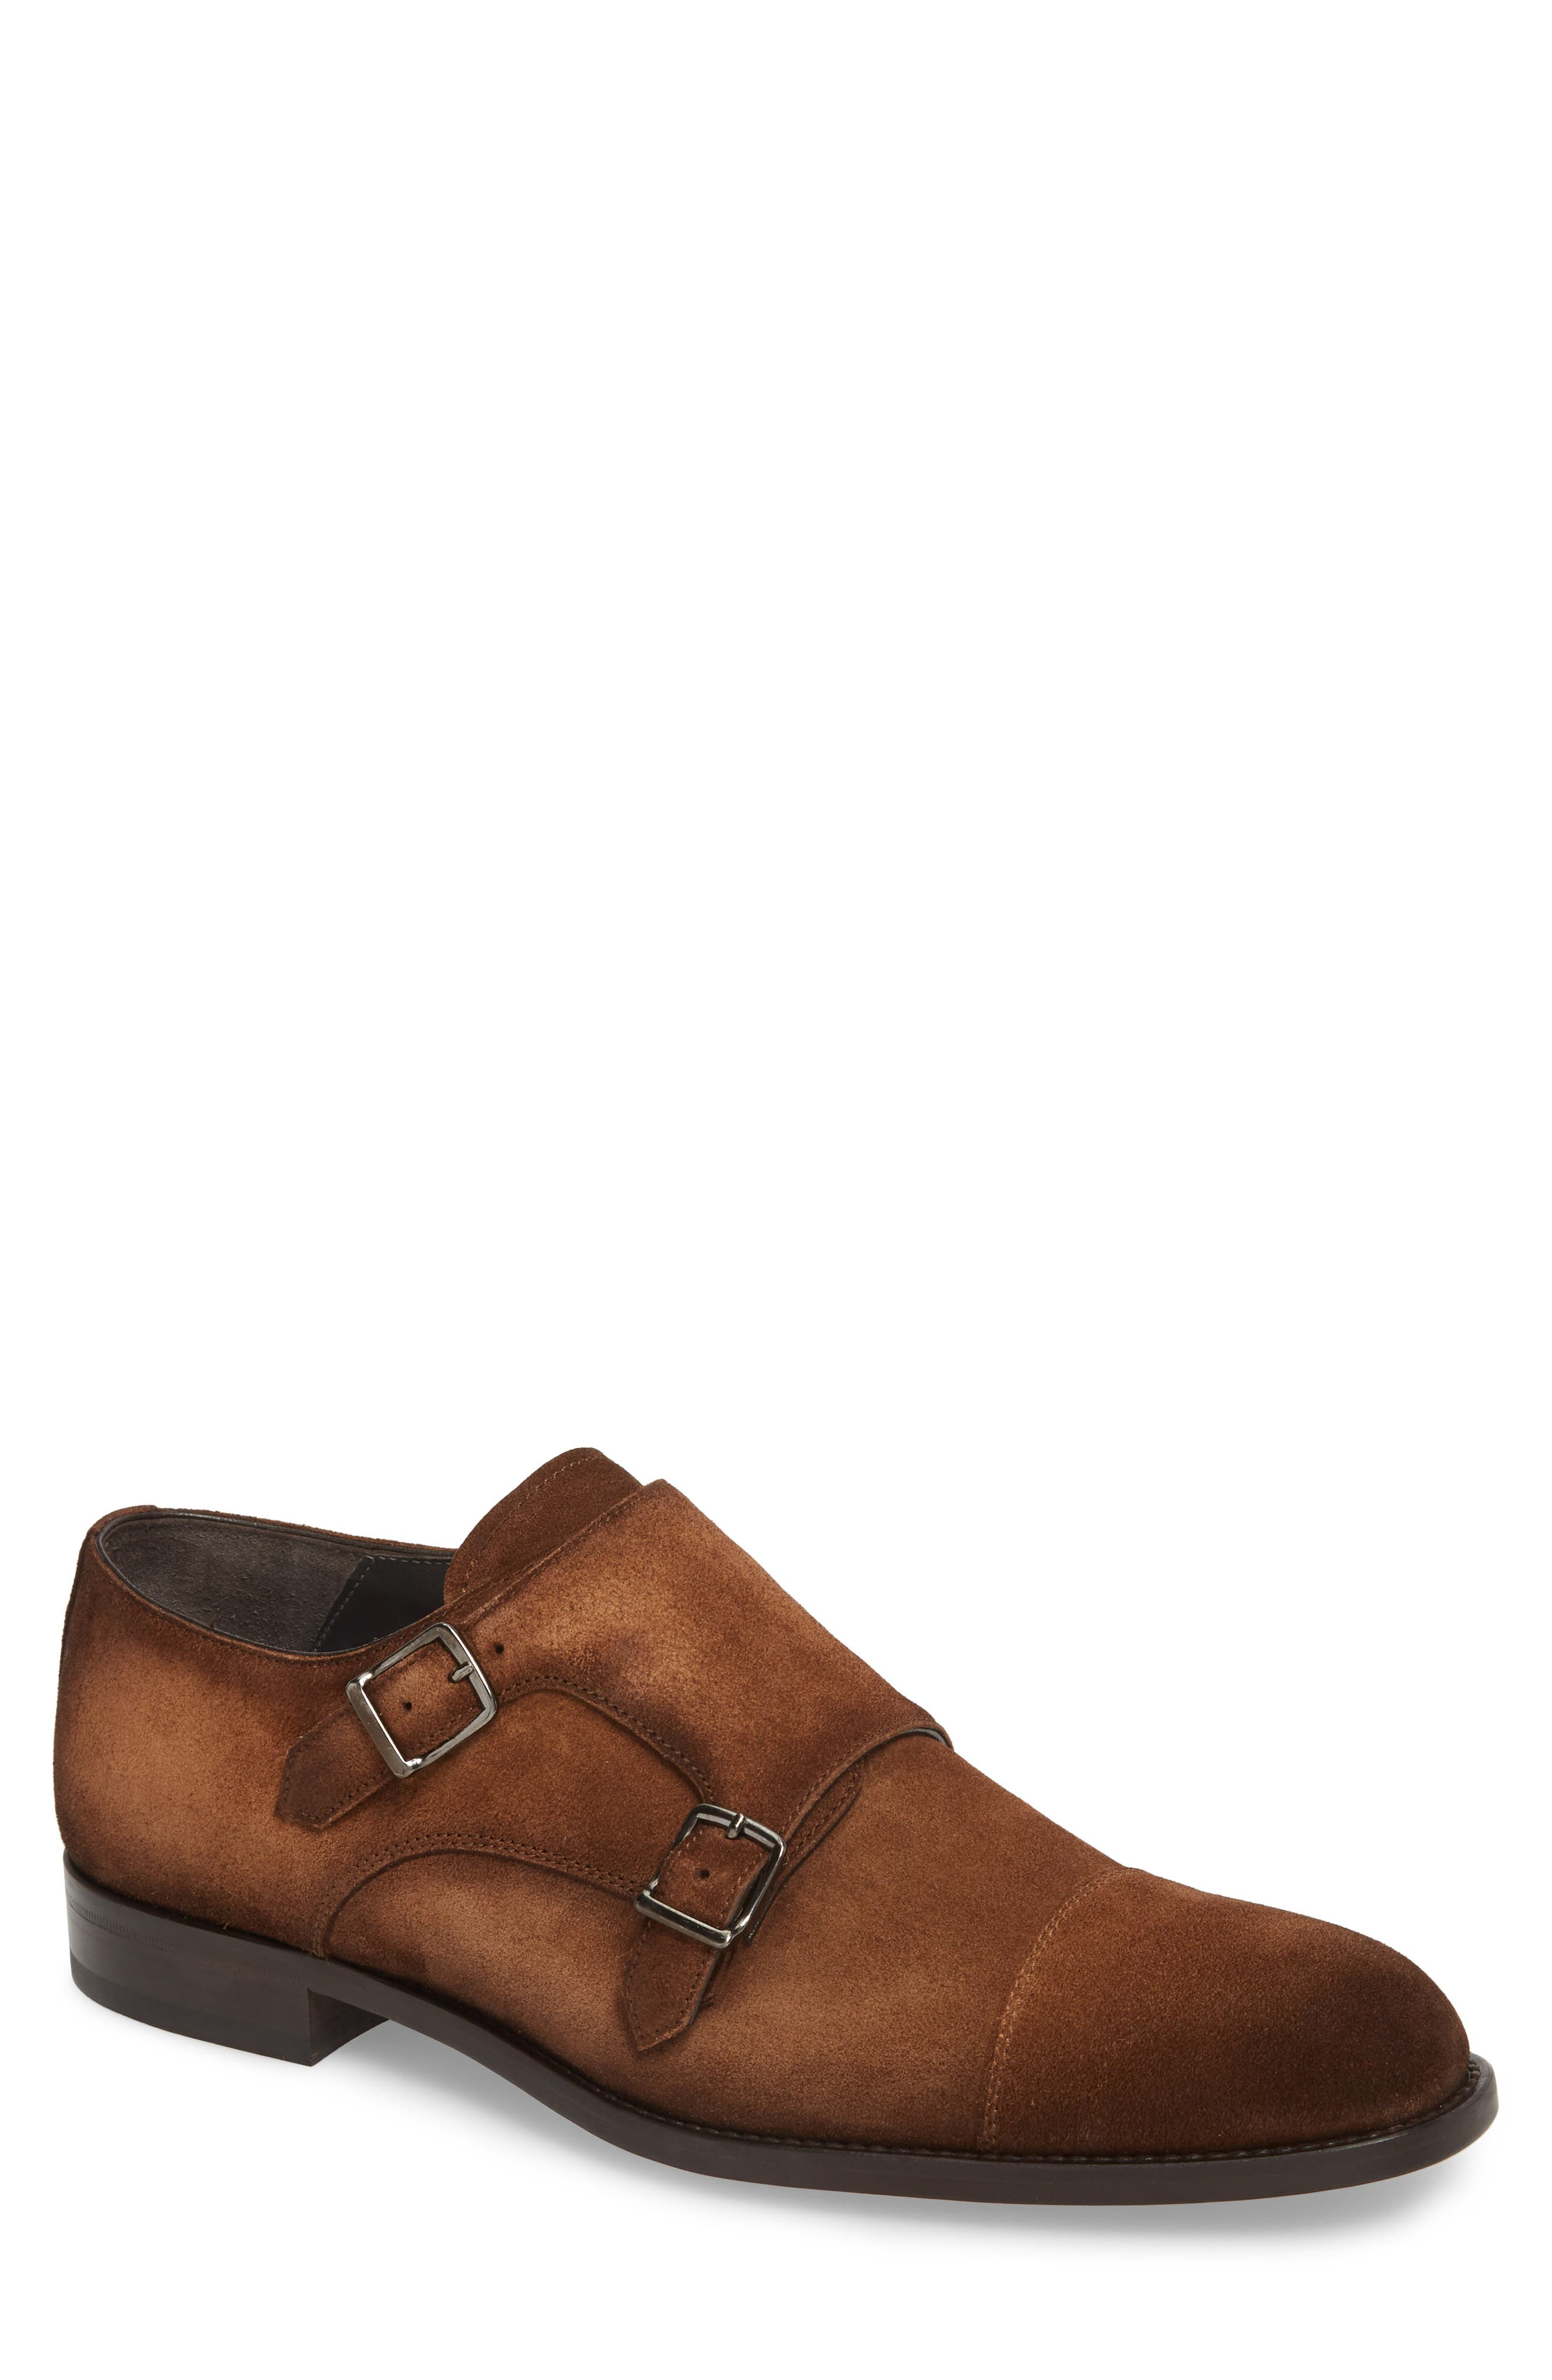 TO BOOT NEW YORK Quentin Cap Toe Monk Shoe, Main, color, BROWN SUEDE LEATHER